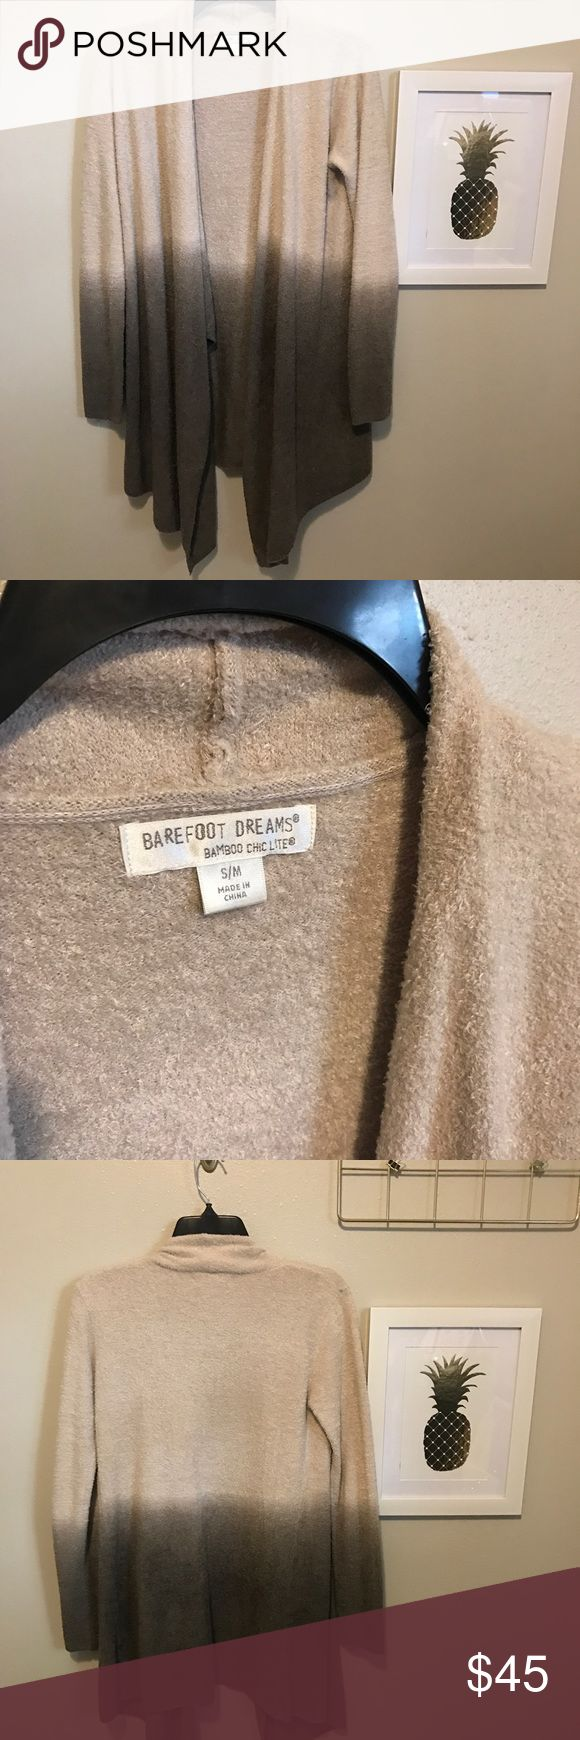 Cocoa Ombré Barefoot Dreams Calypso Wrap Cardigan Excellent condition. Ombré Cocoa. Tan and brown. Very soft. From Nordstrom. Small/Medium Barefoot Dreams Sweaters Cardigans